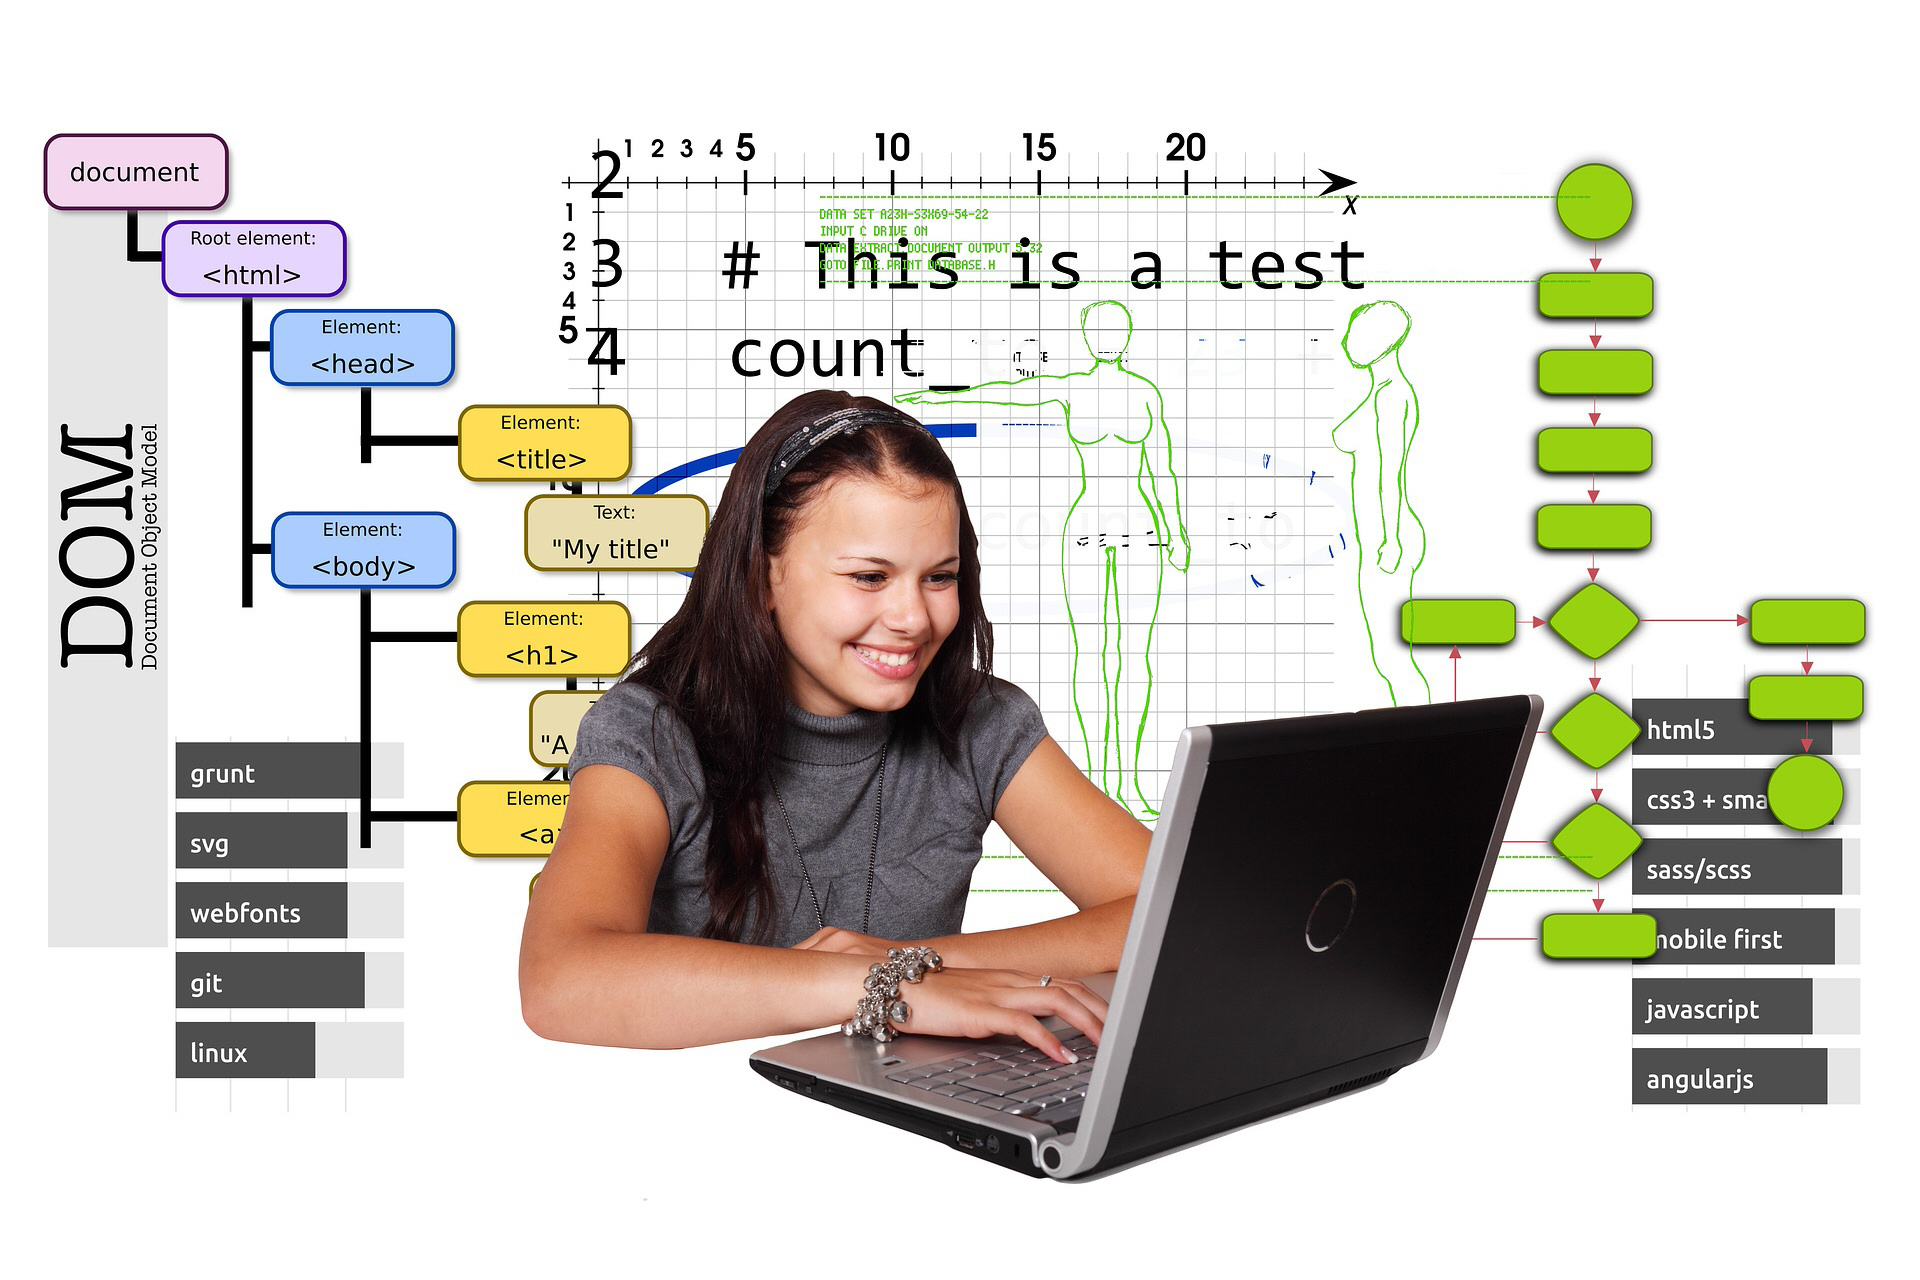 4 Ways You Can Use Technology to Teach Kids - Webquests and Submit Assignments Online